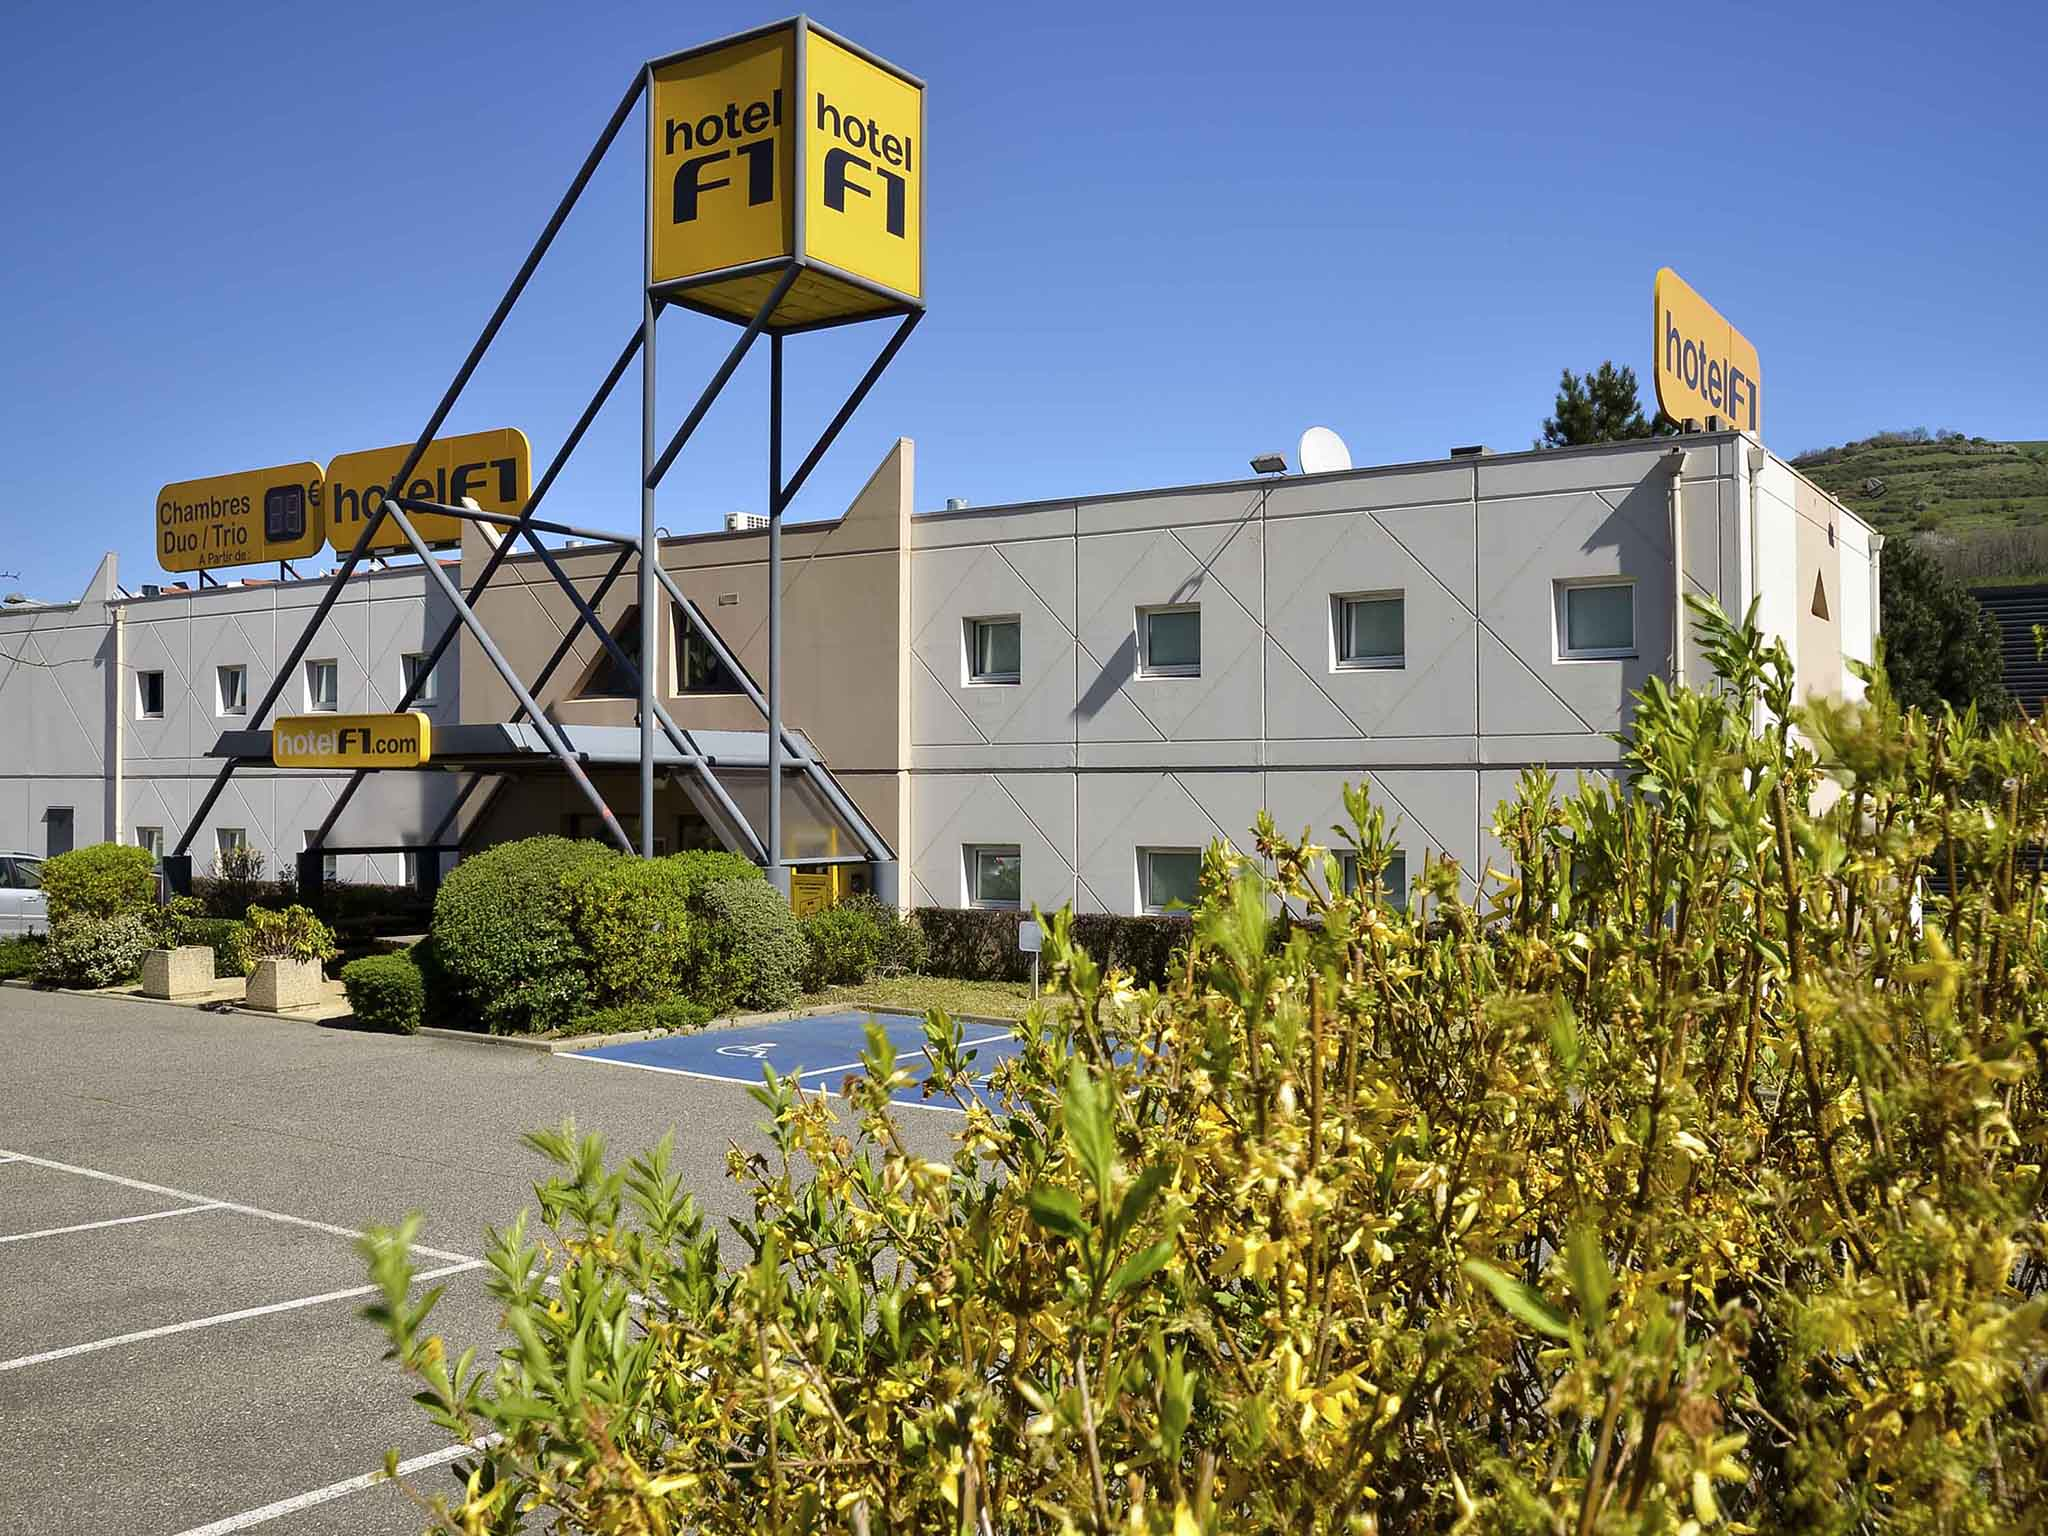 Hotel – hotelF1 Clermont-Ferrand Issoire Coudes